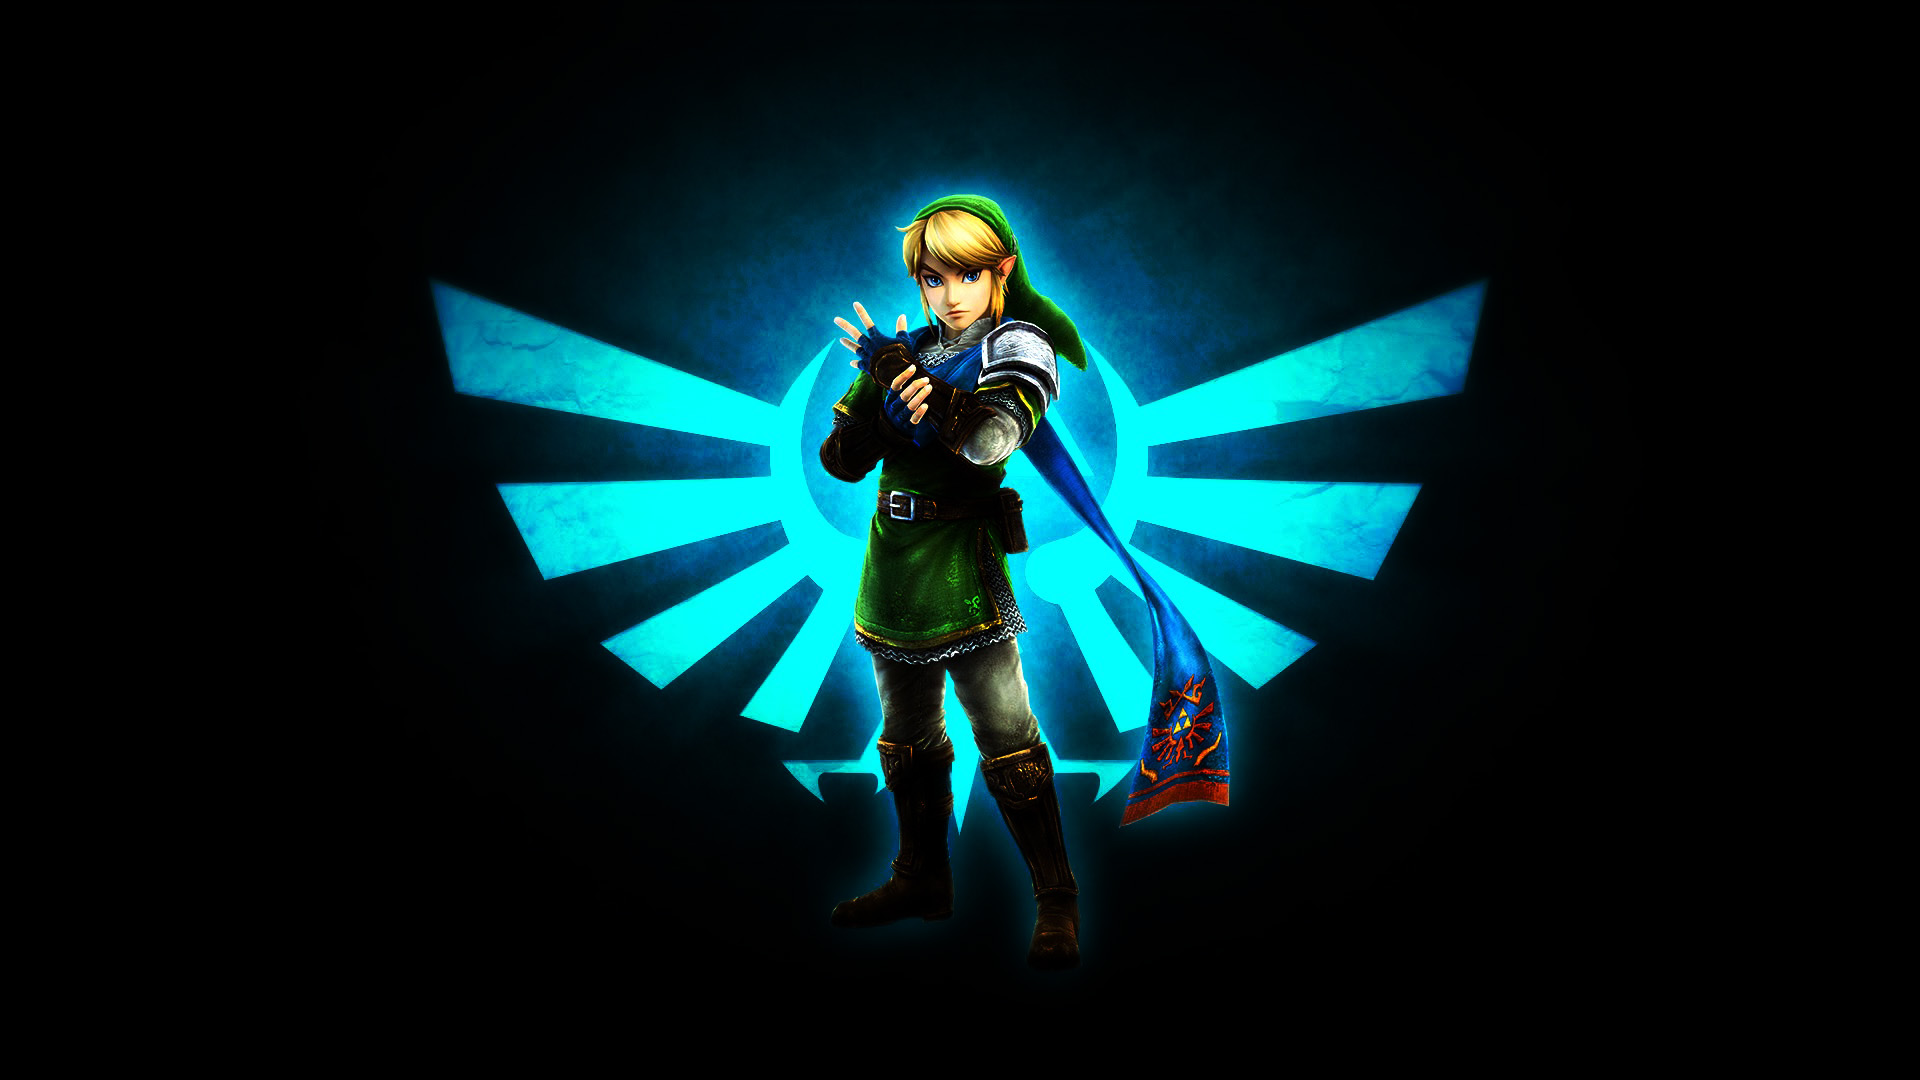 Link Background Wallpapers WIN10 THEMES 1920x1080